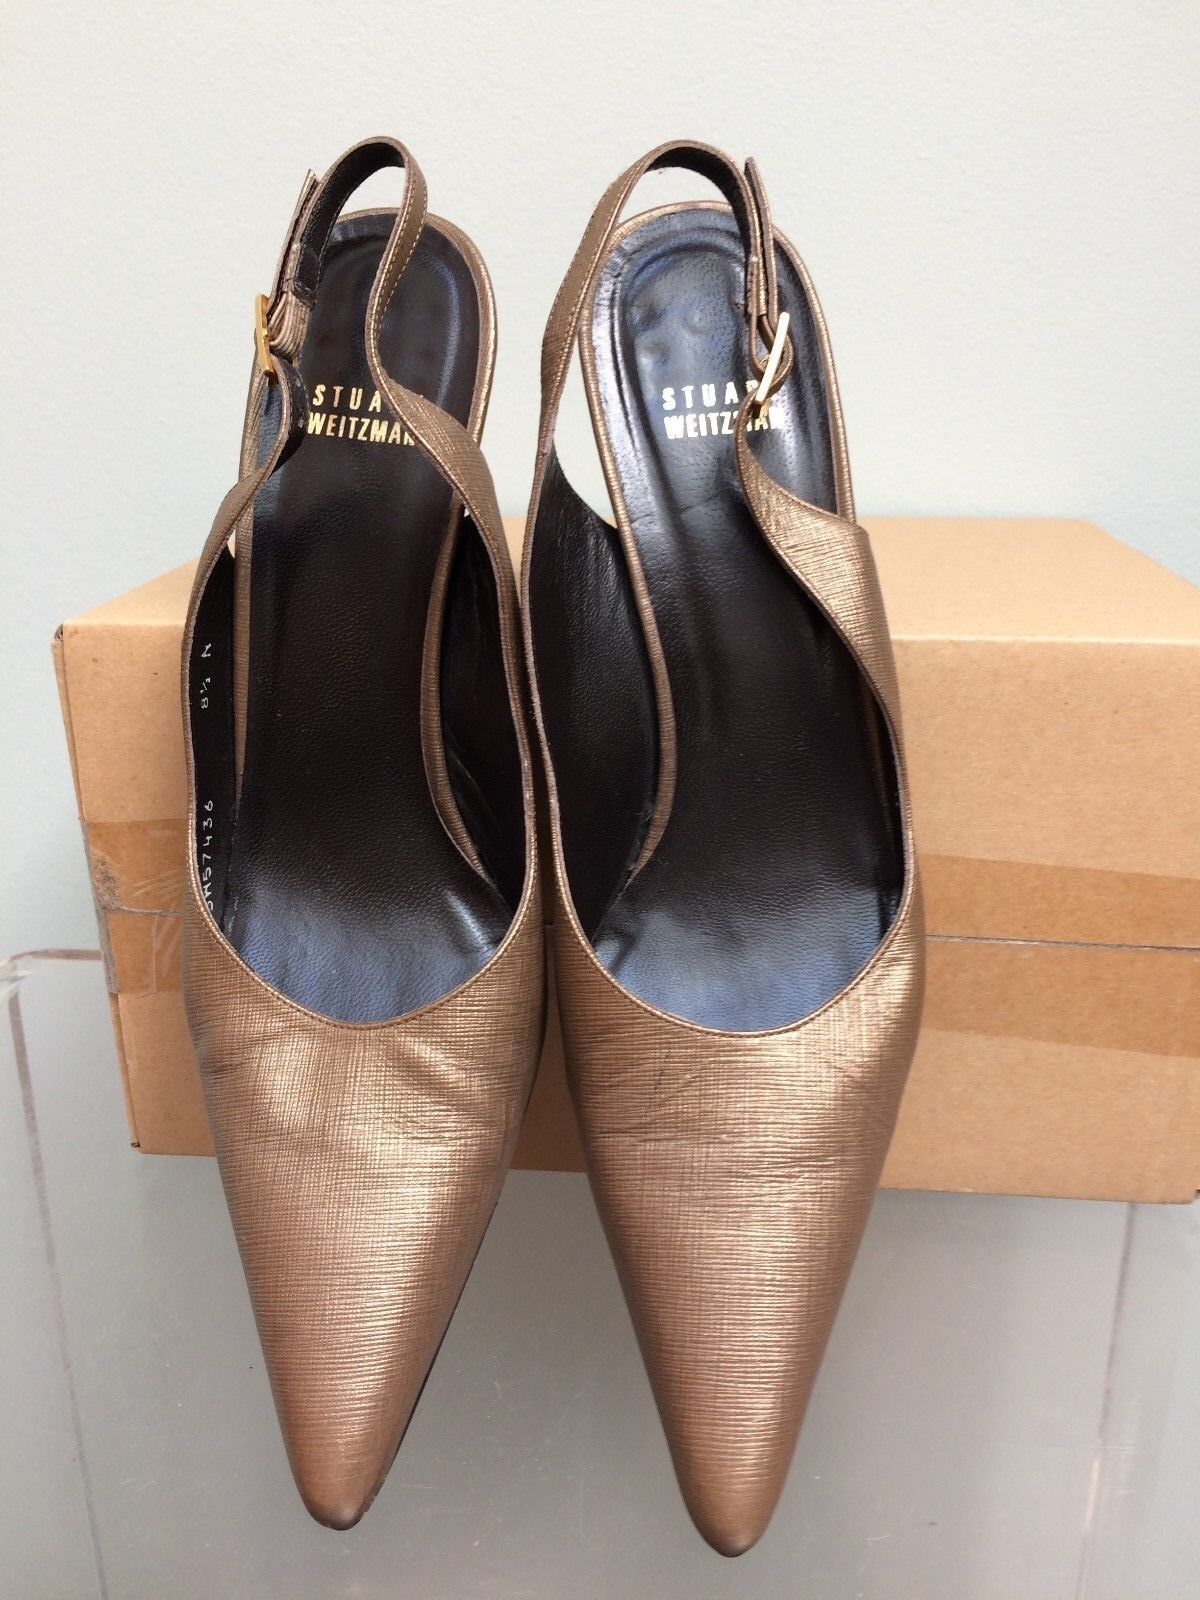 STUART WEITZMAN Sz 8.5 Narrow Bronze/Gold Pointy Toe Slingback 3